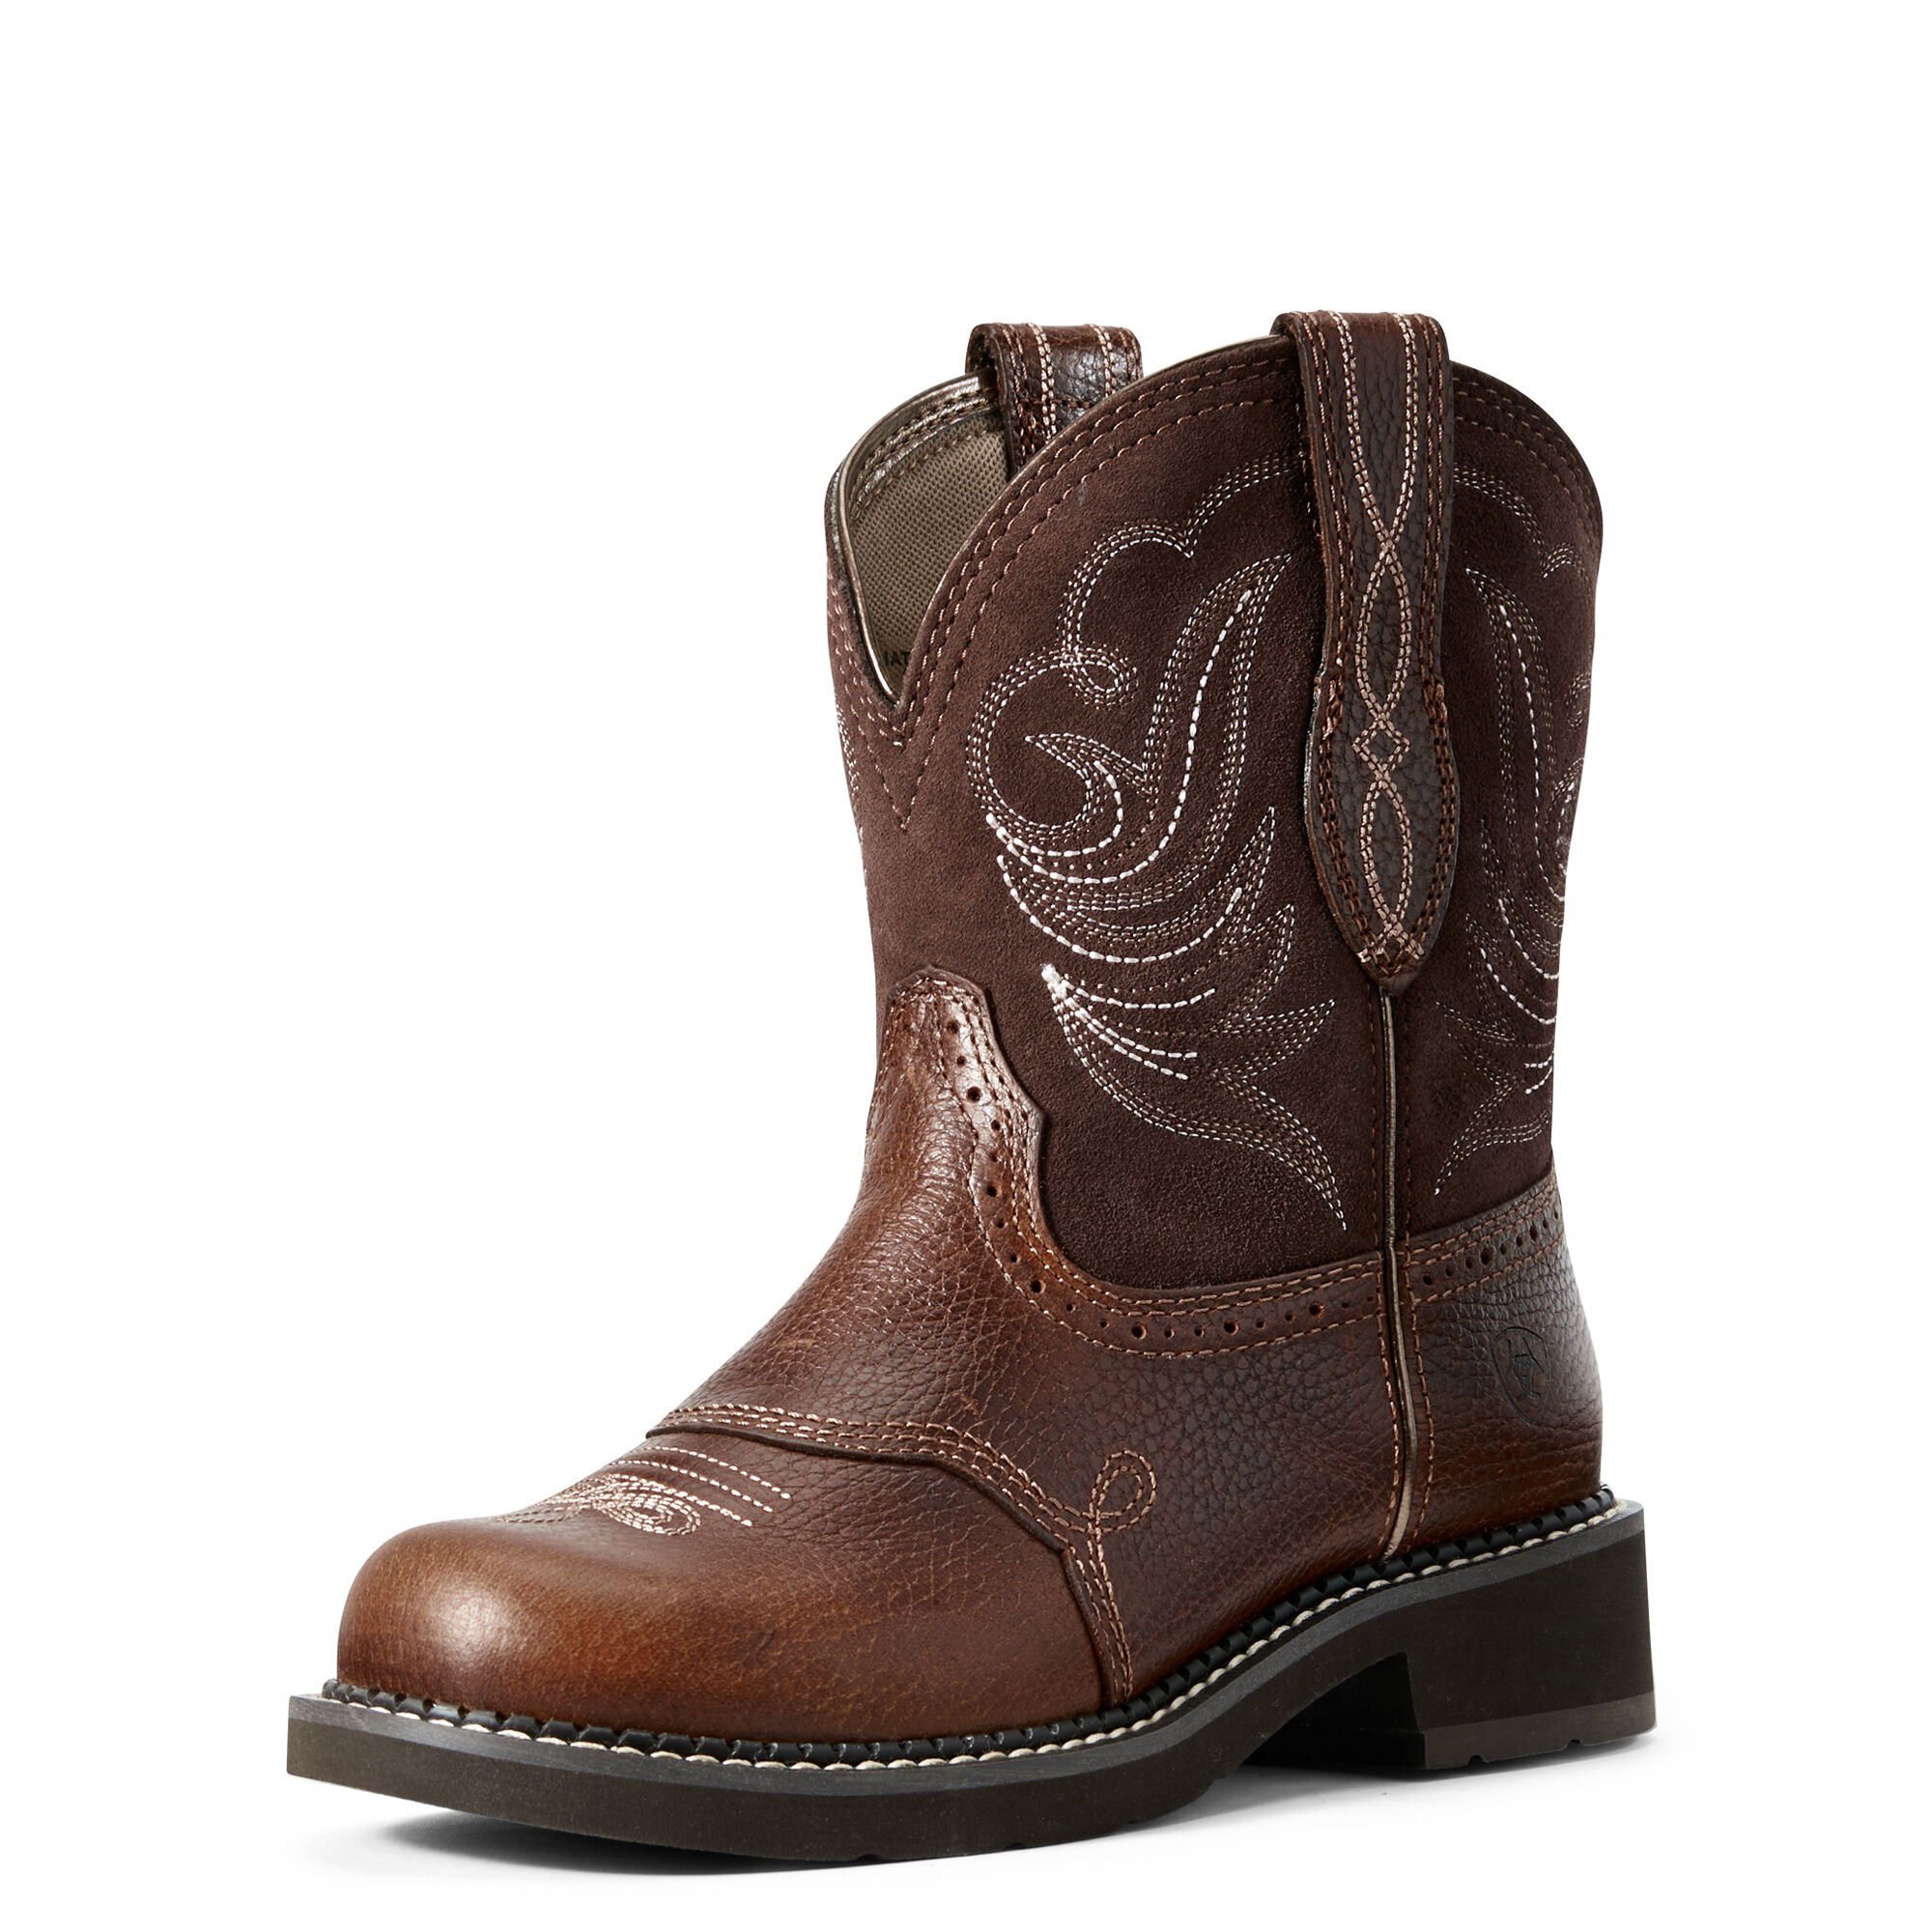 Women's Fatbaby Heritage Dapper Western Boots in Copper Kettle by Ariat